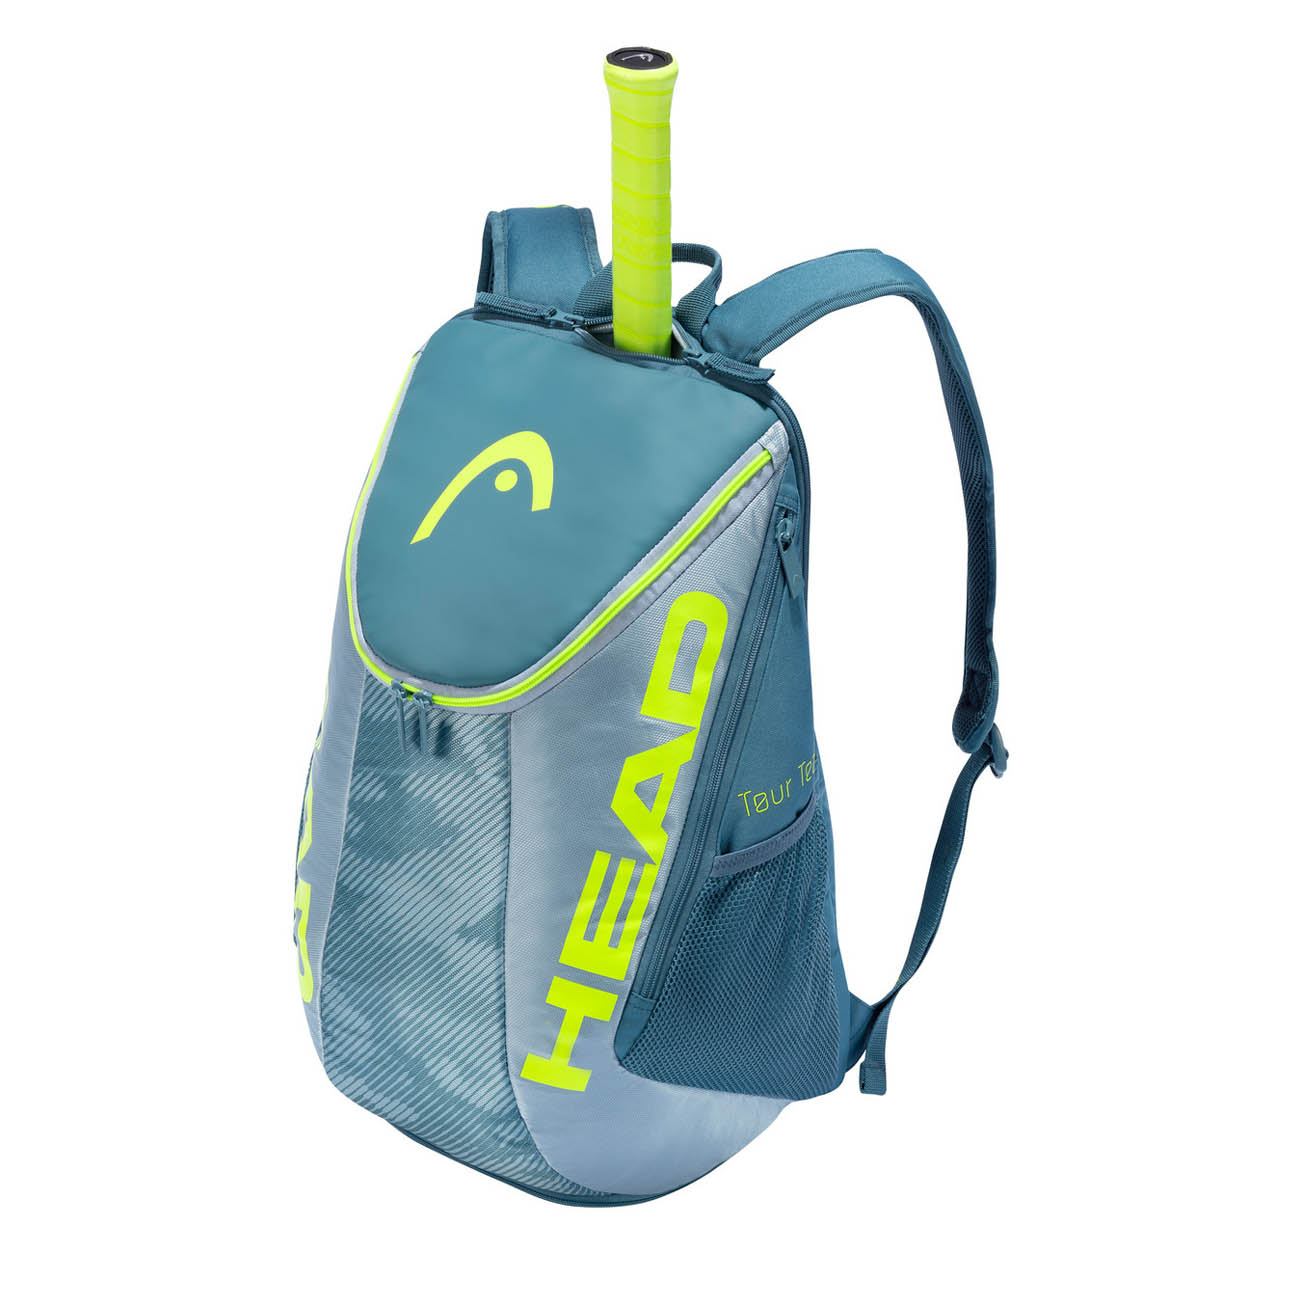 Head Tour Team Extreme 2020 Backpack - Grey/Neon Yellow